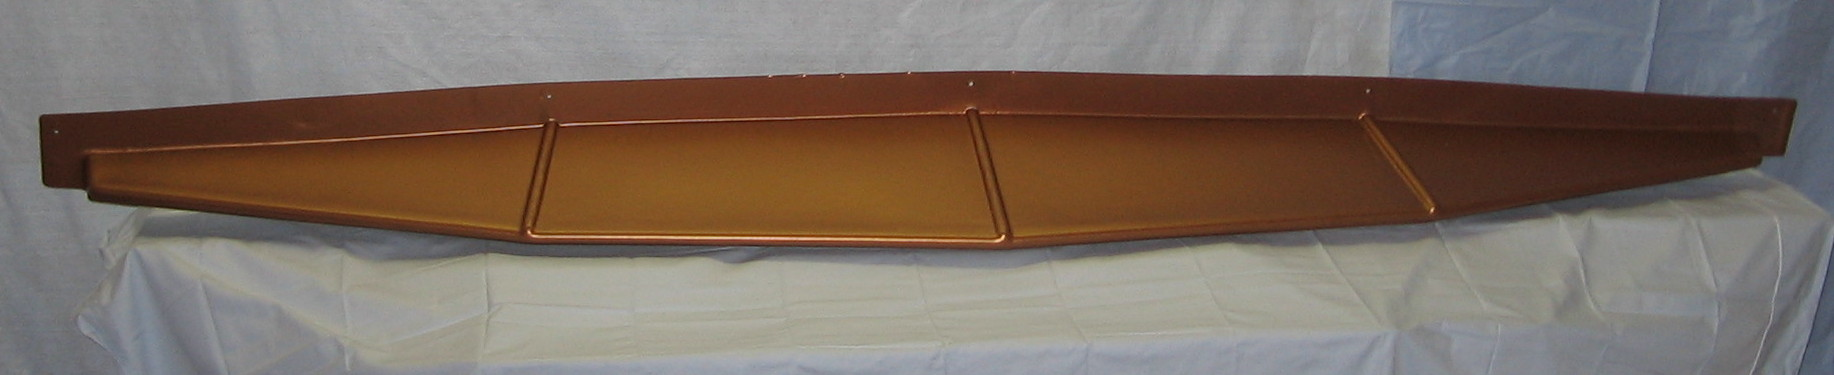 C4Bow ABS Coppertone roof